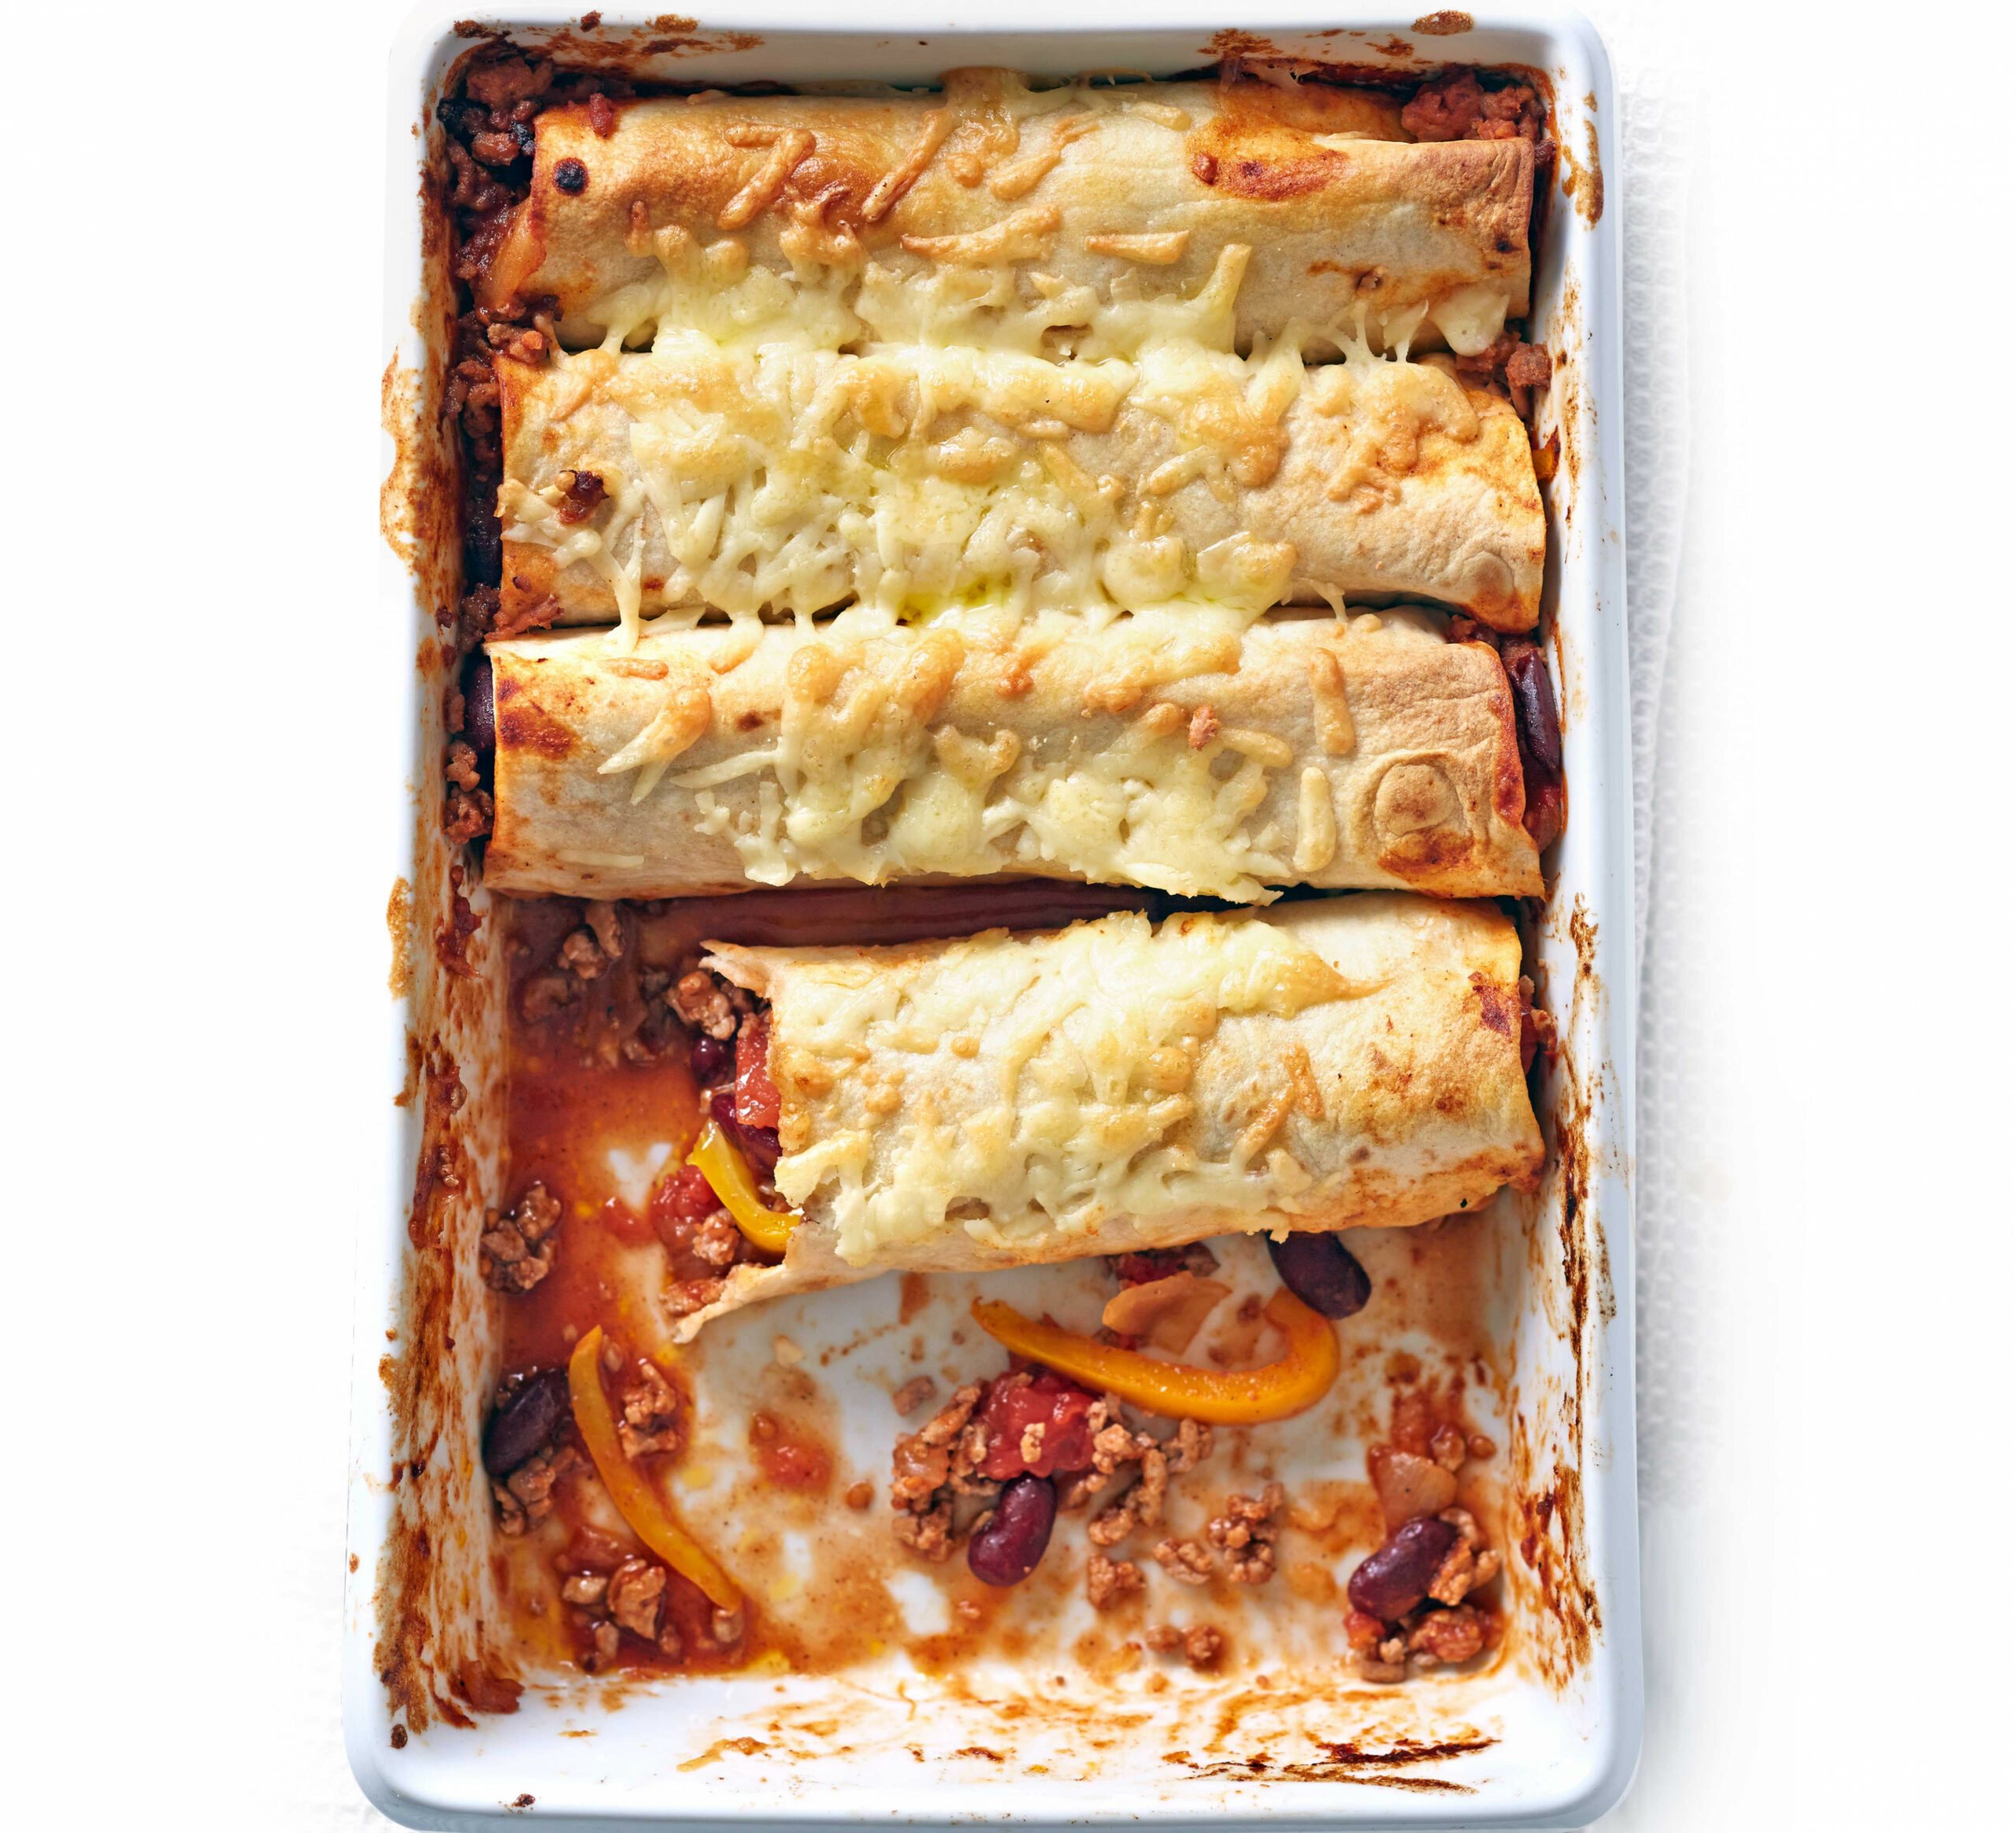 Turkey enchiladas - recipes minced meat healthy